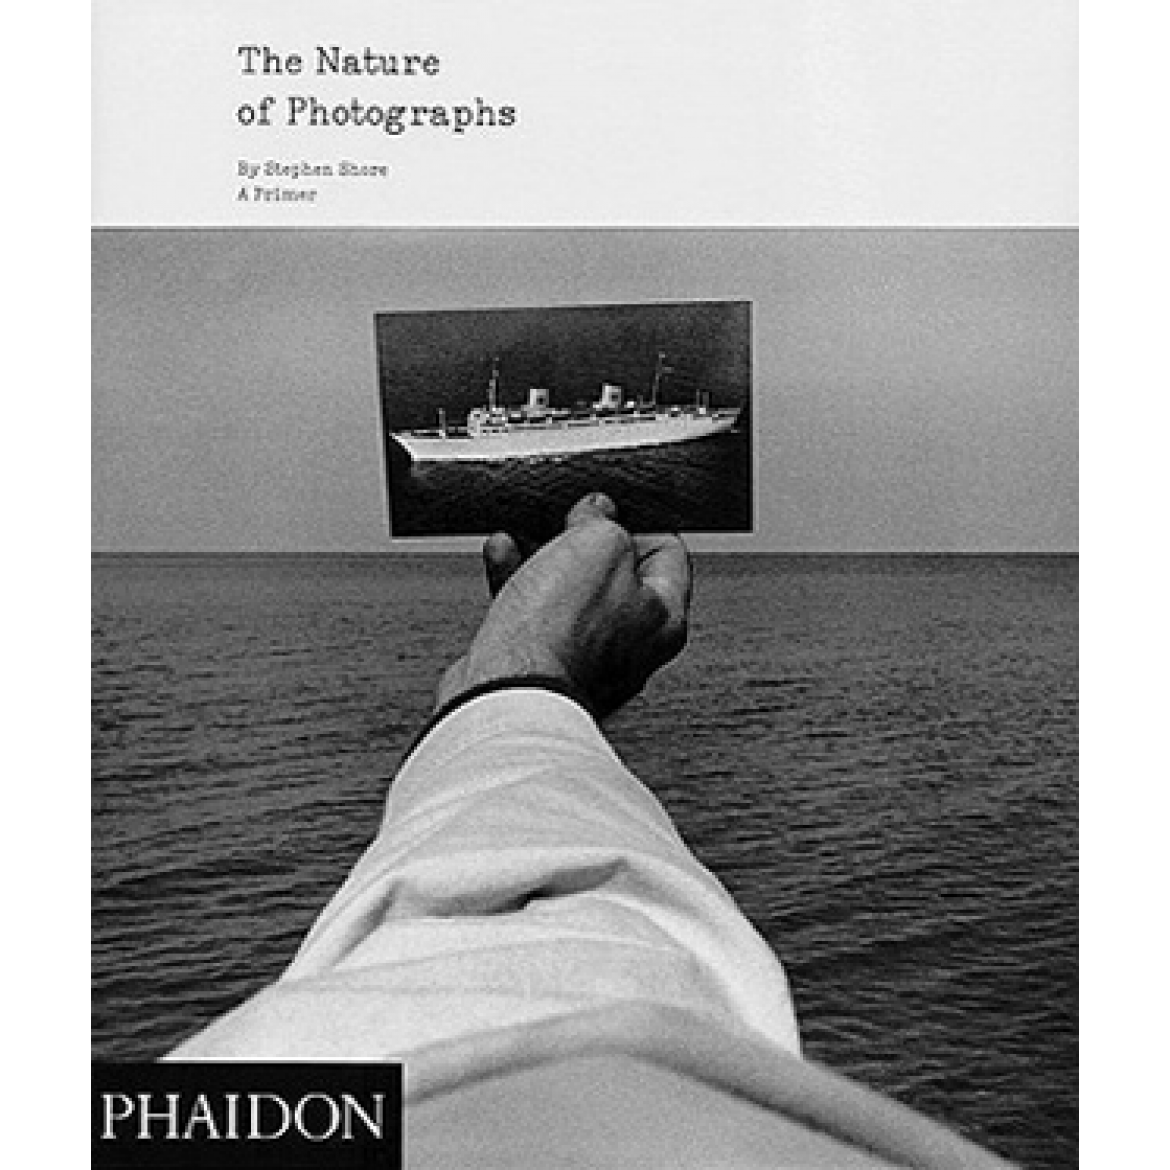 The Nature of Photographs - Stephen Shore